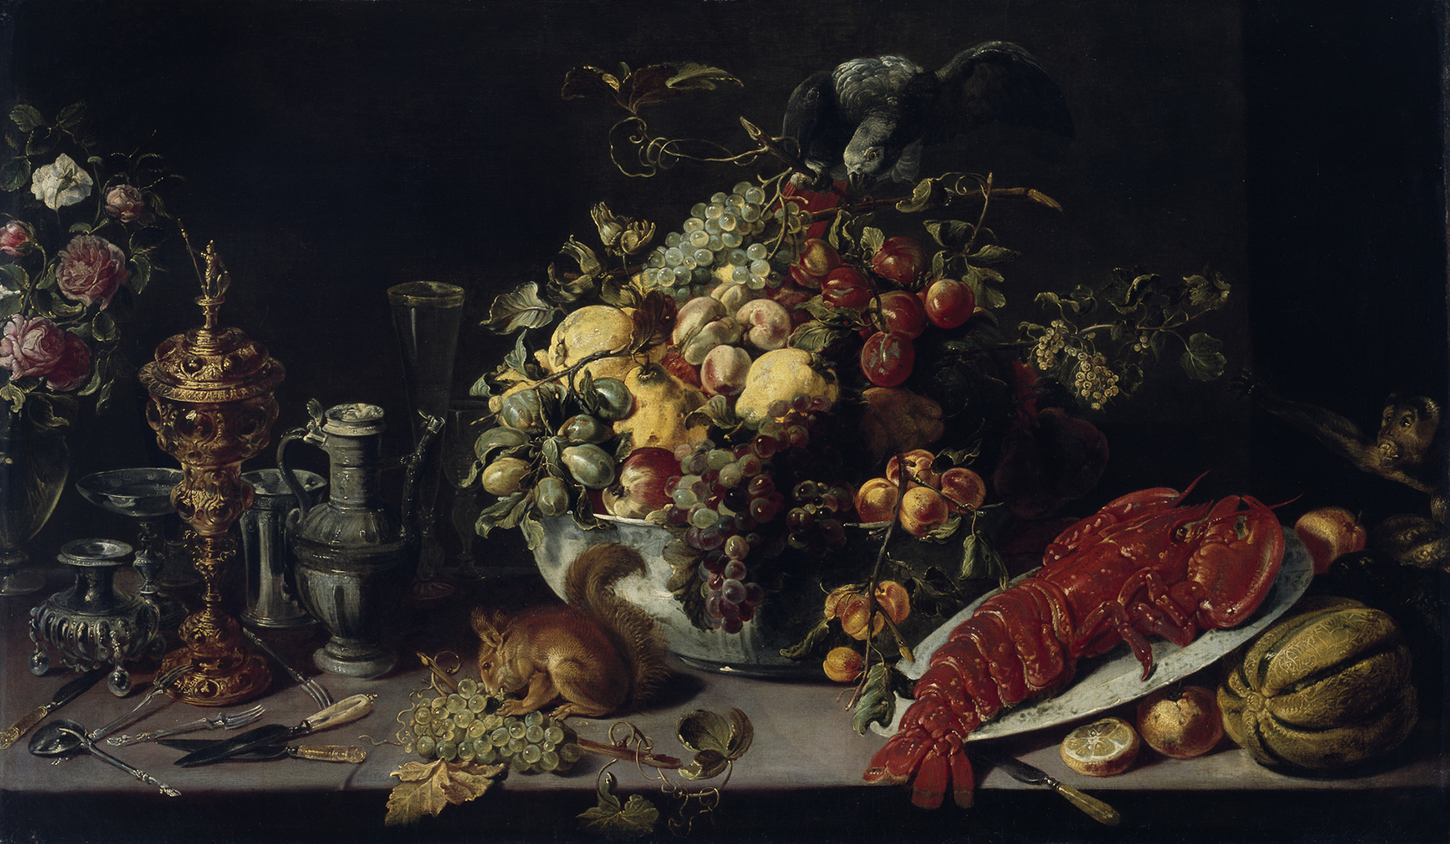 A view of a banquet table. Among the food shown (lobster, fruit, vegetables) we see a squirrel on the table, and to the right, a small monkey.